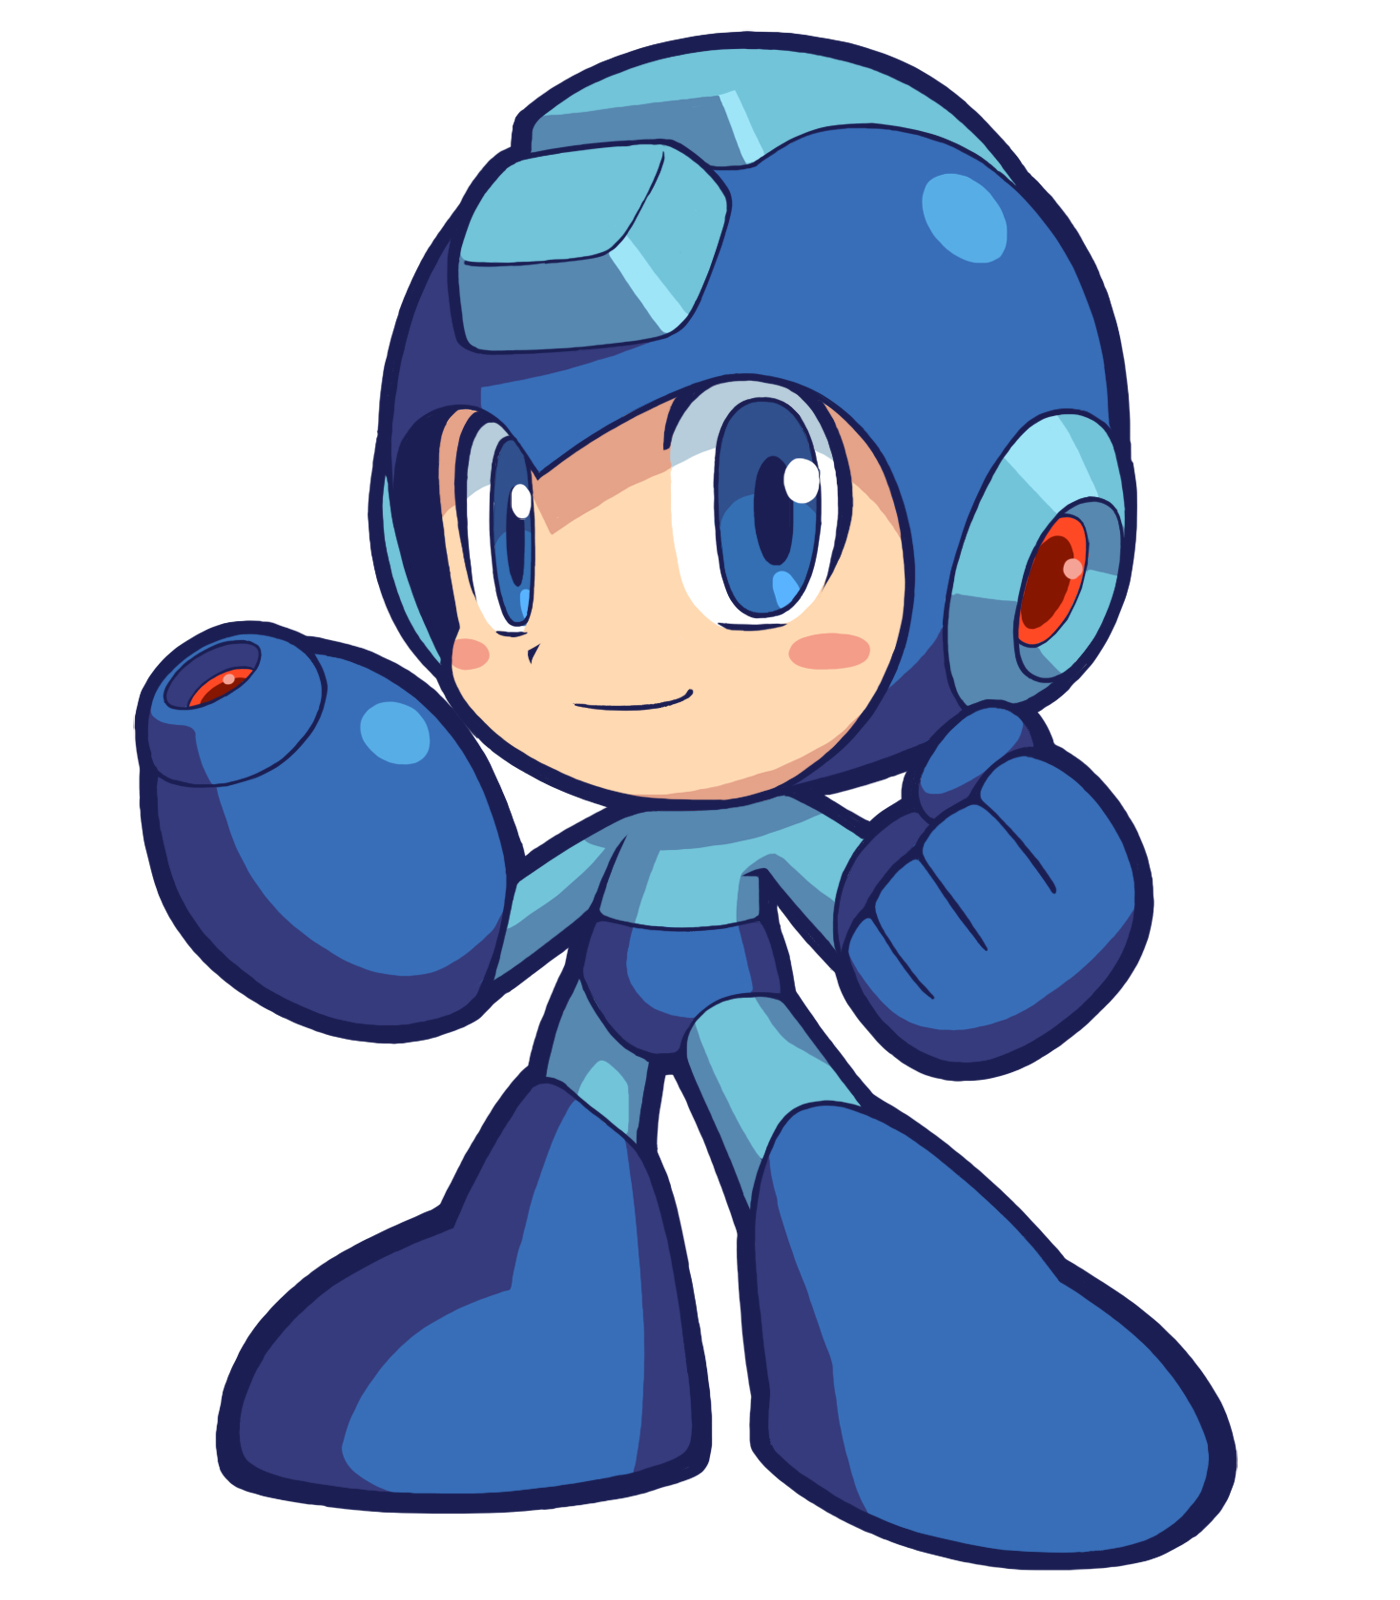 MegamanMMPU The Challenge